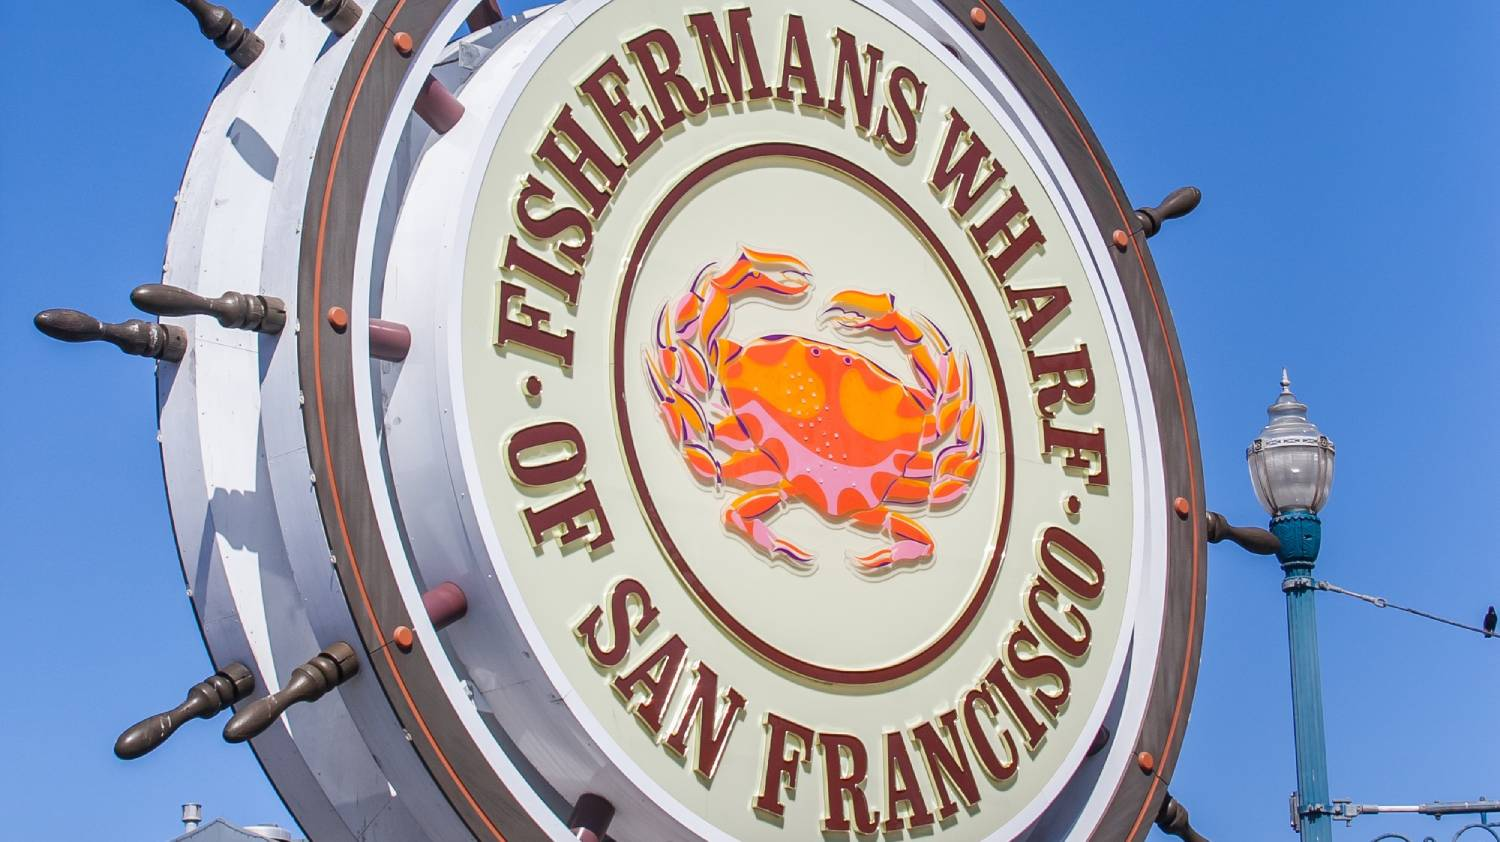 Fisherman's Wharf - Things To Do In San Francisco